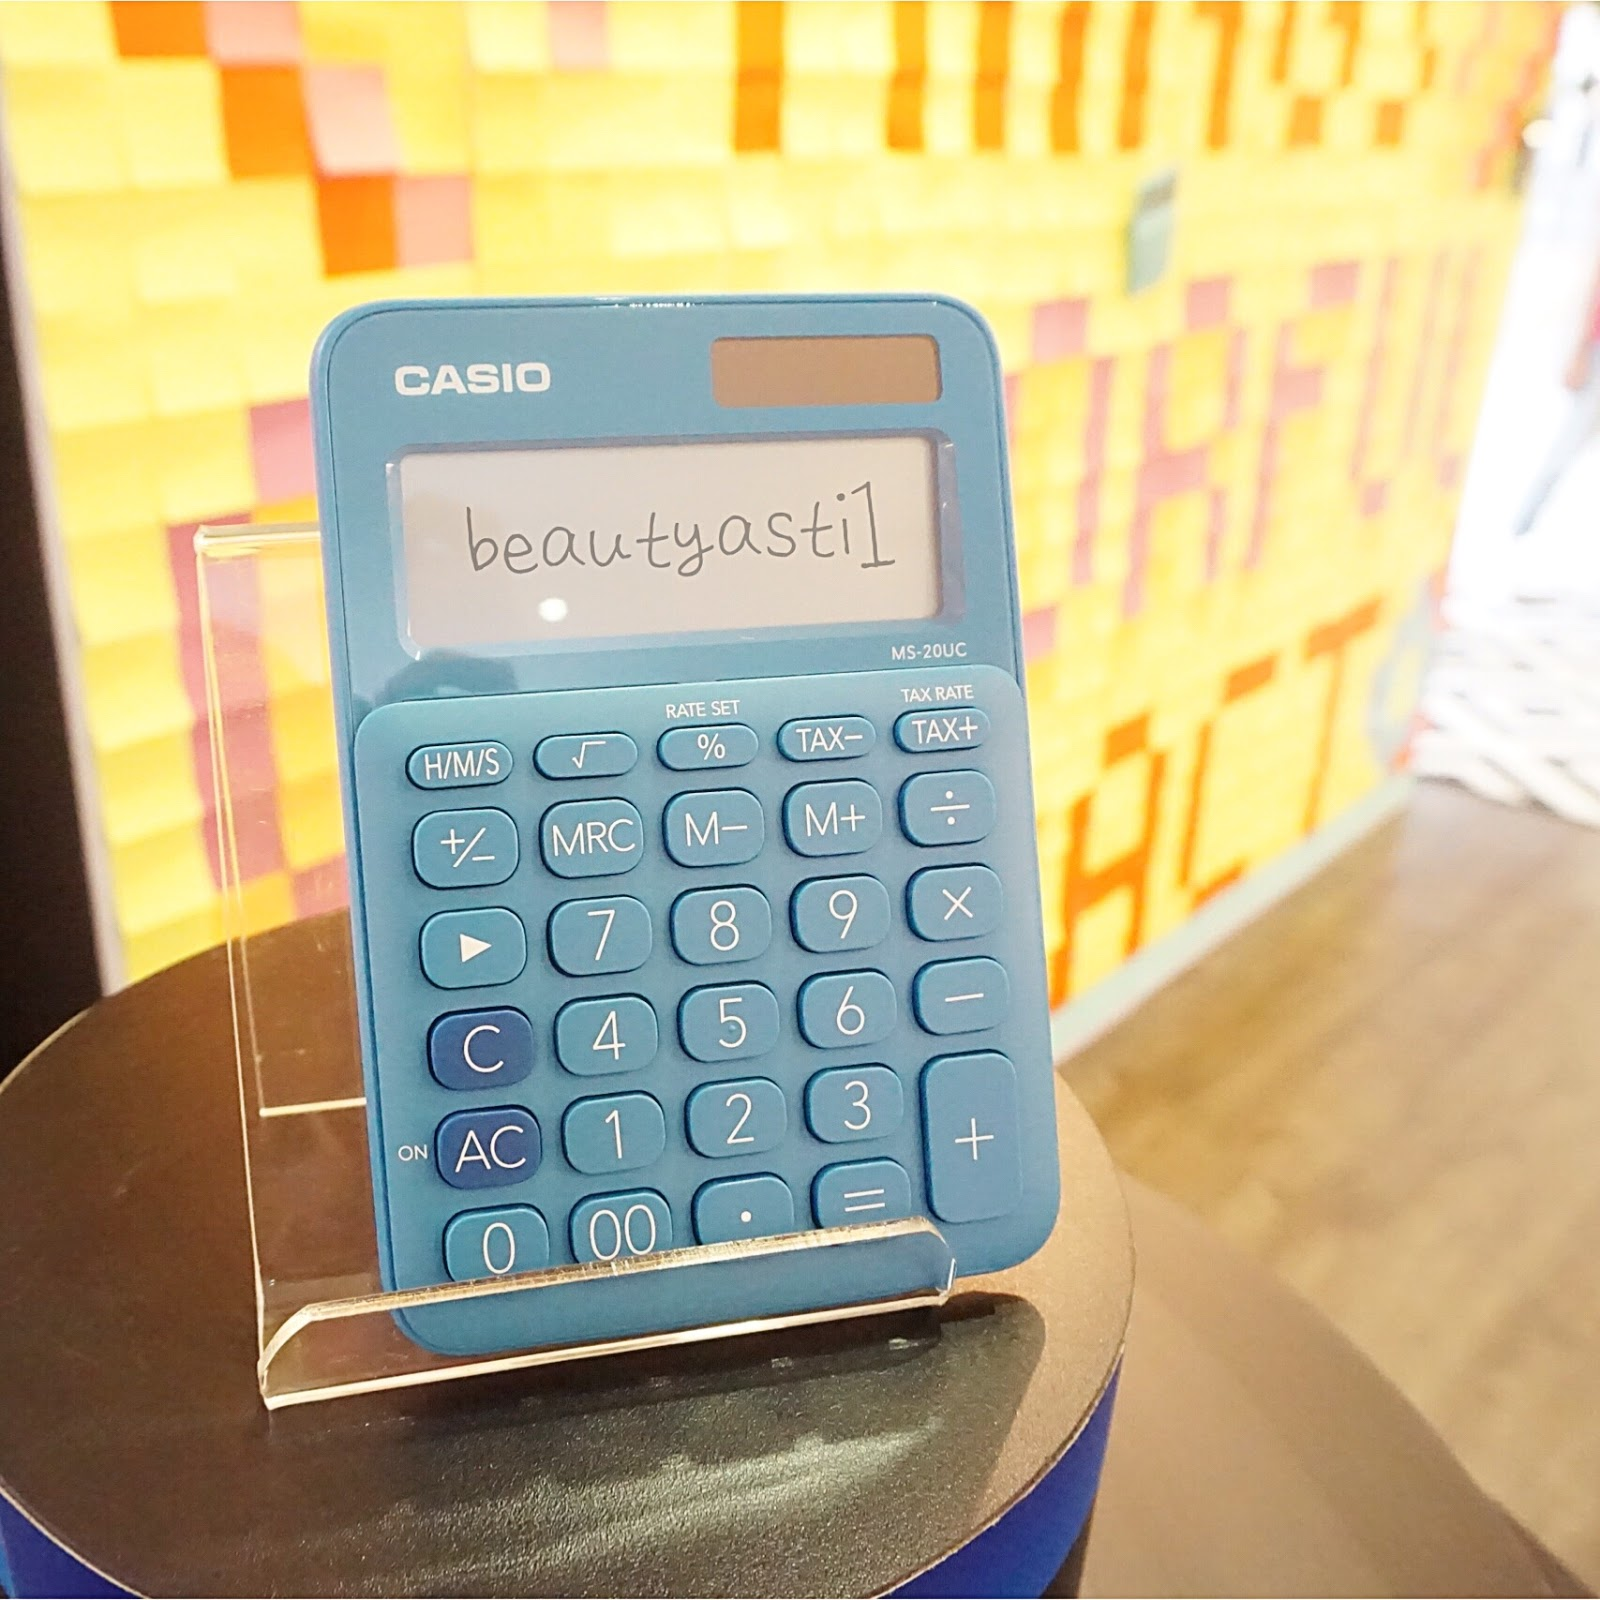 Casio My Style Blogger Gathering At Harlequin Bistro Beautyasti1 Colorful Calculator Ms 20uc Black Little Things Impact